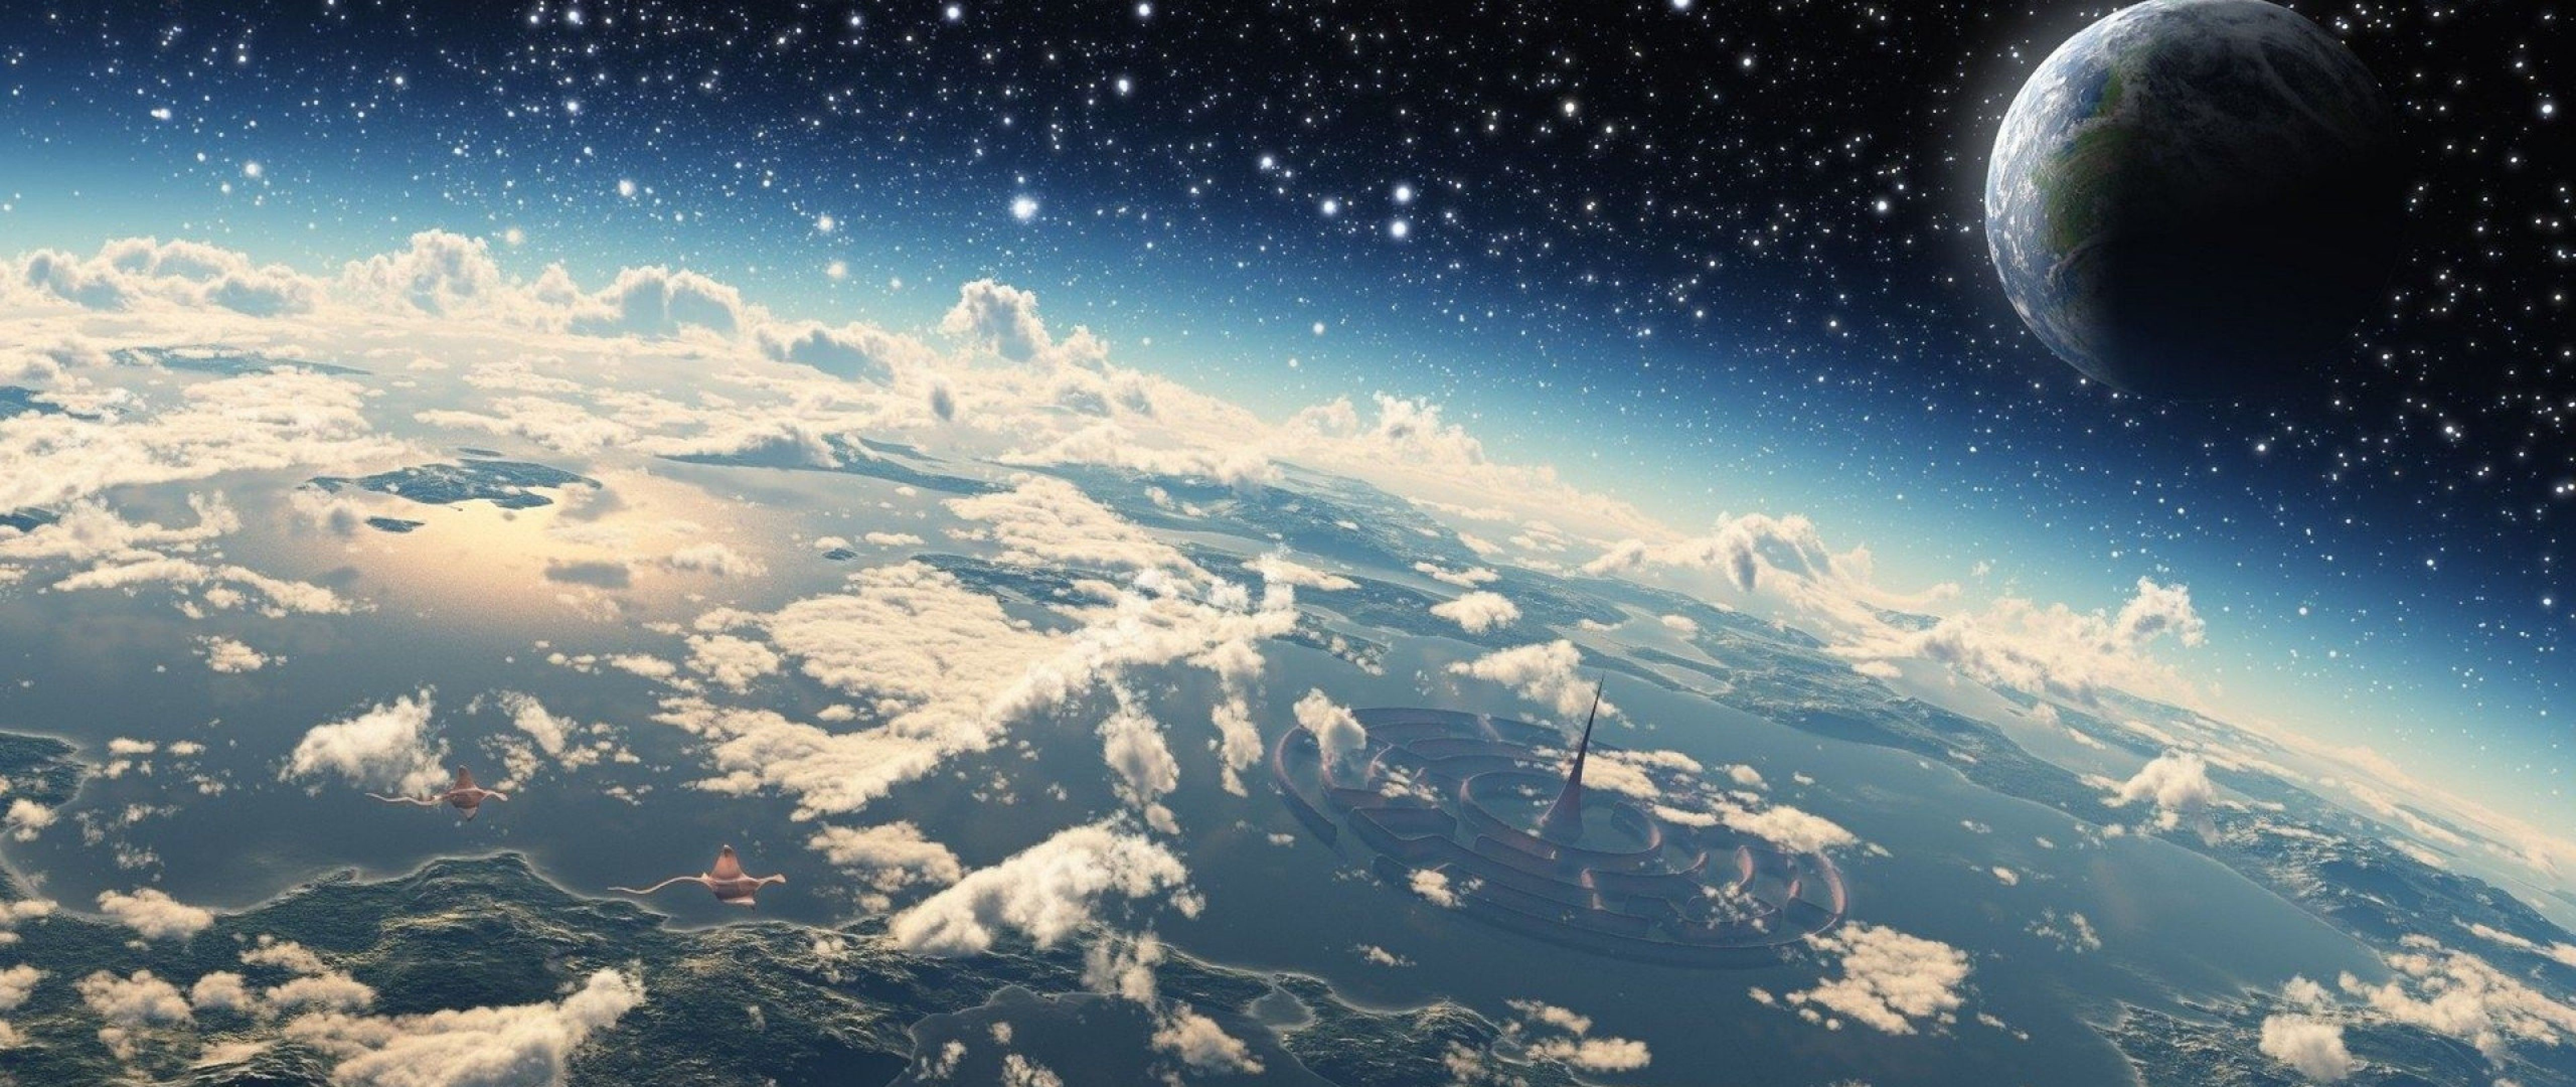 Wallpaper Live Space 4K in 2020 Space iphone